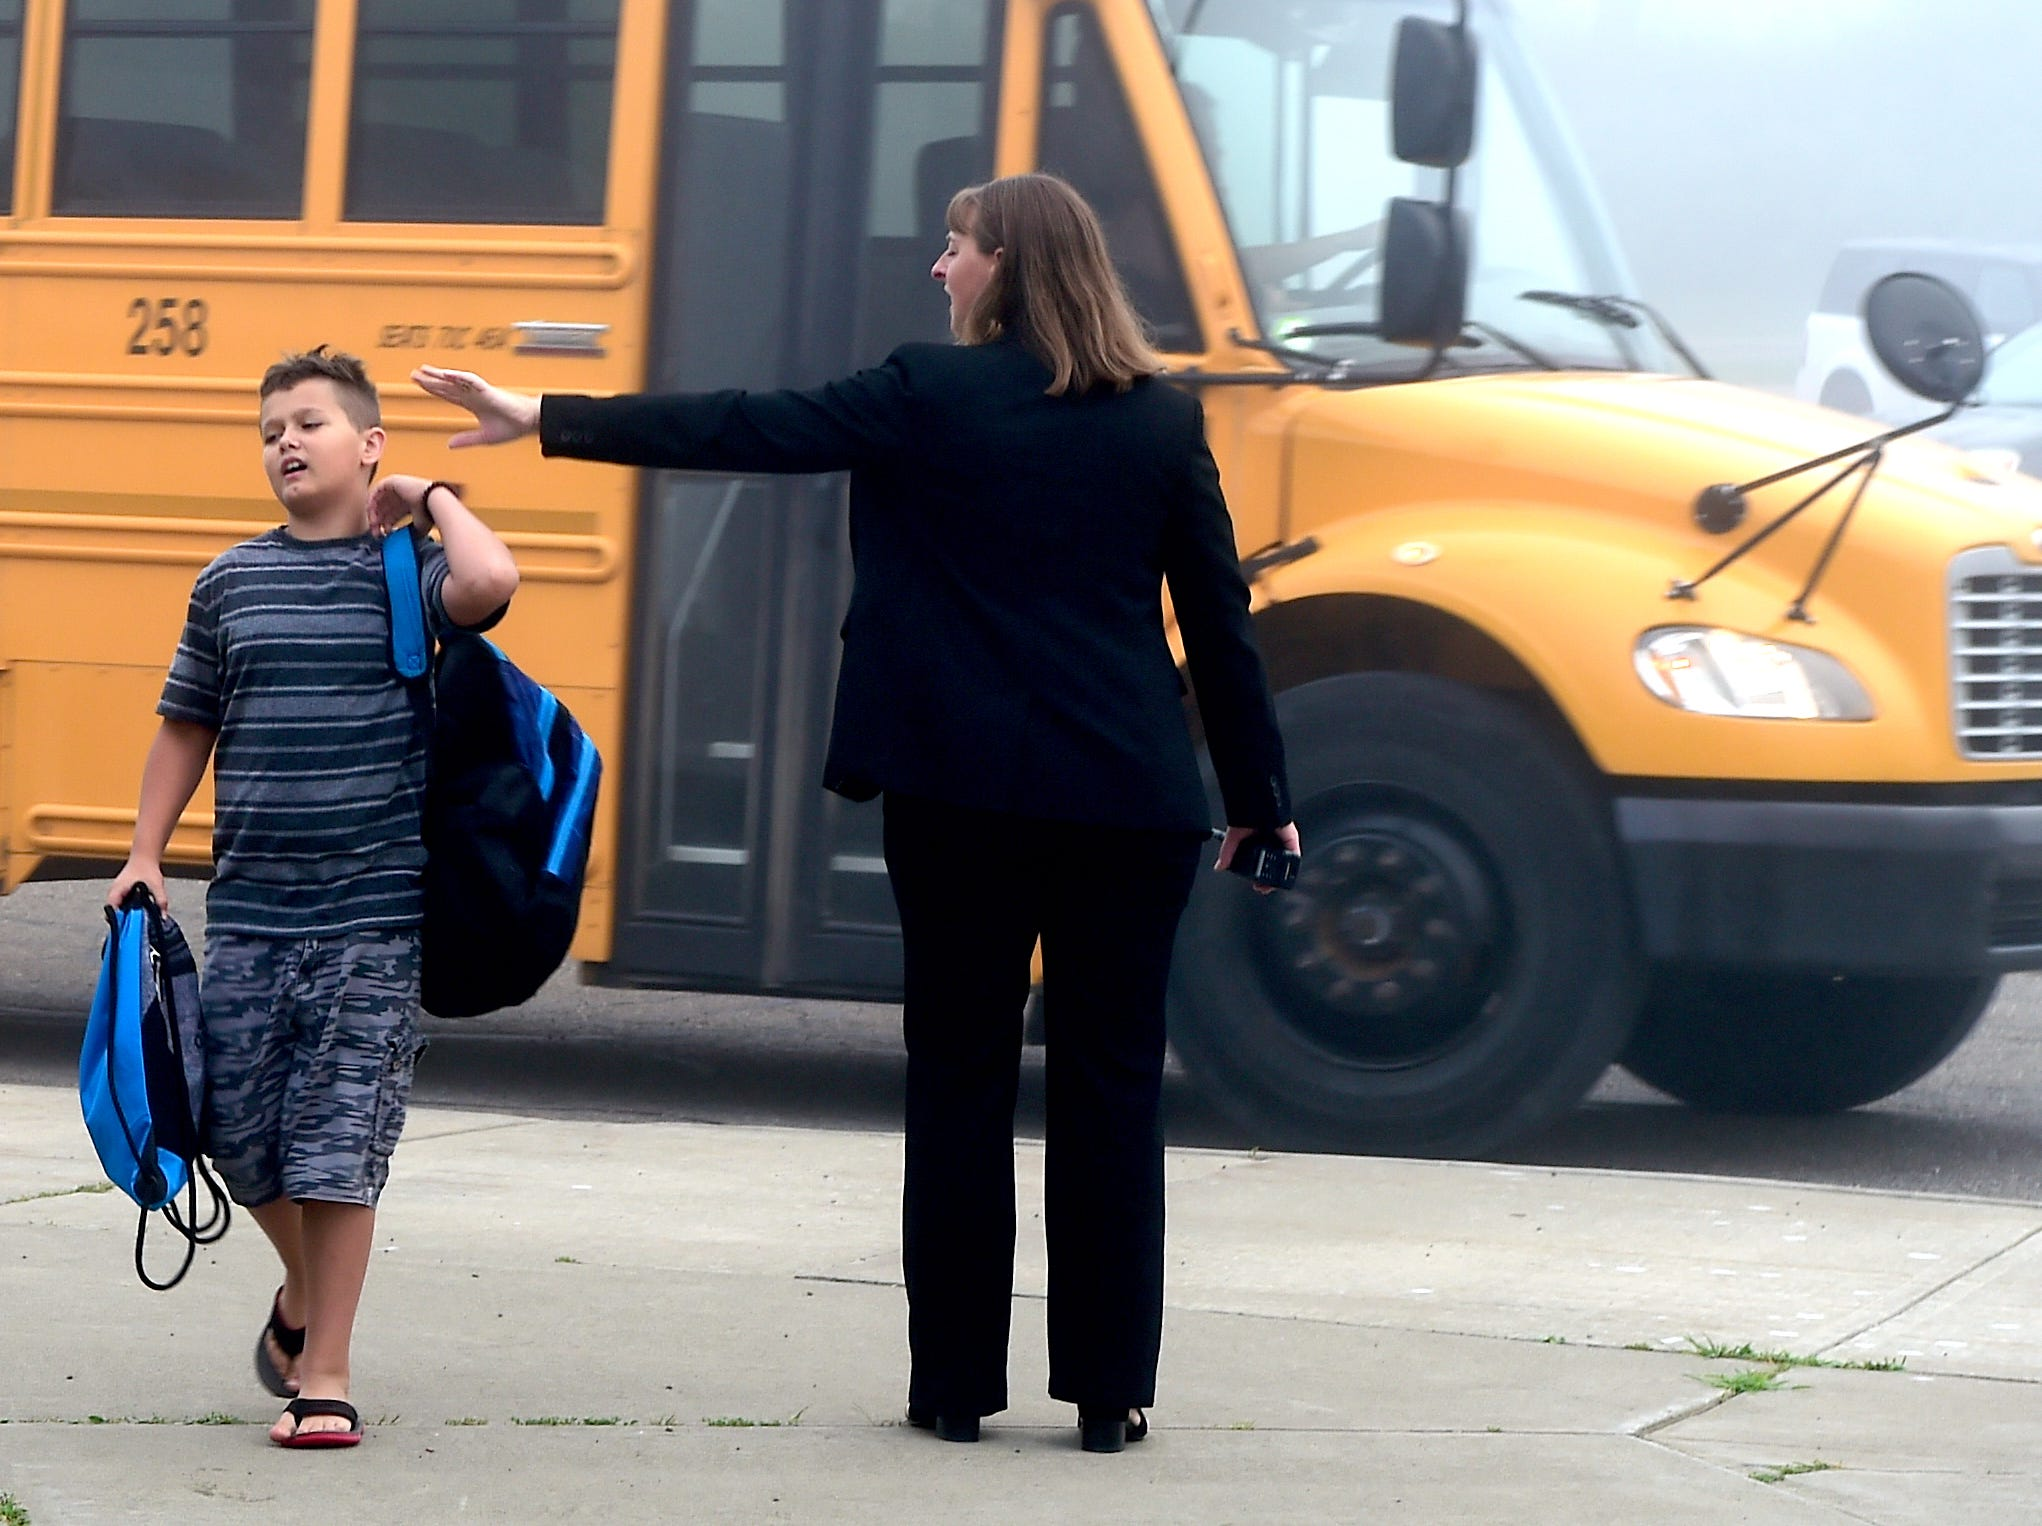 Owego Apalachin Middle School Assistant Principal Emily crawford greets students during the morning drop-off at the first day of classes at Owego Apalachin Middle School and Owego Free Academy, Wednesday, September 5, 2018.